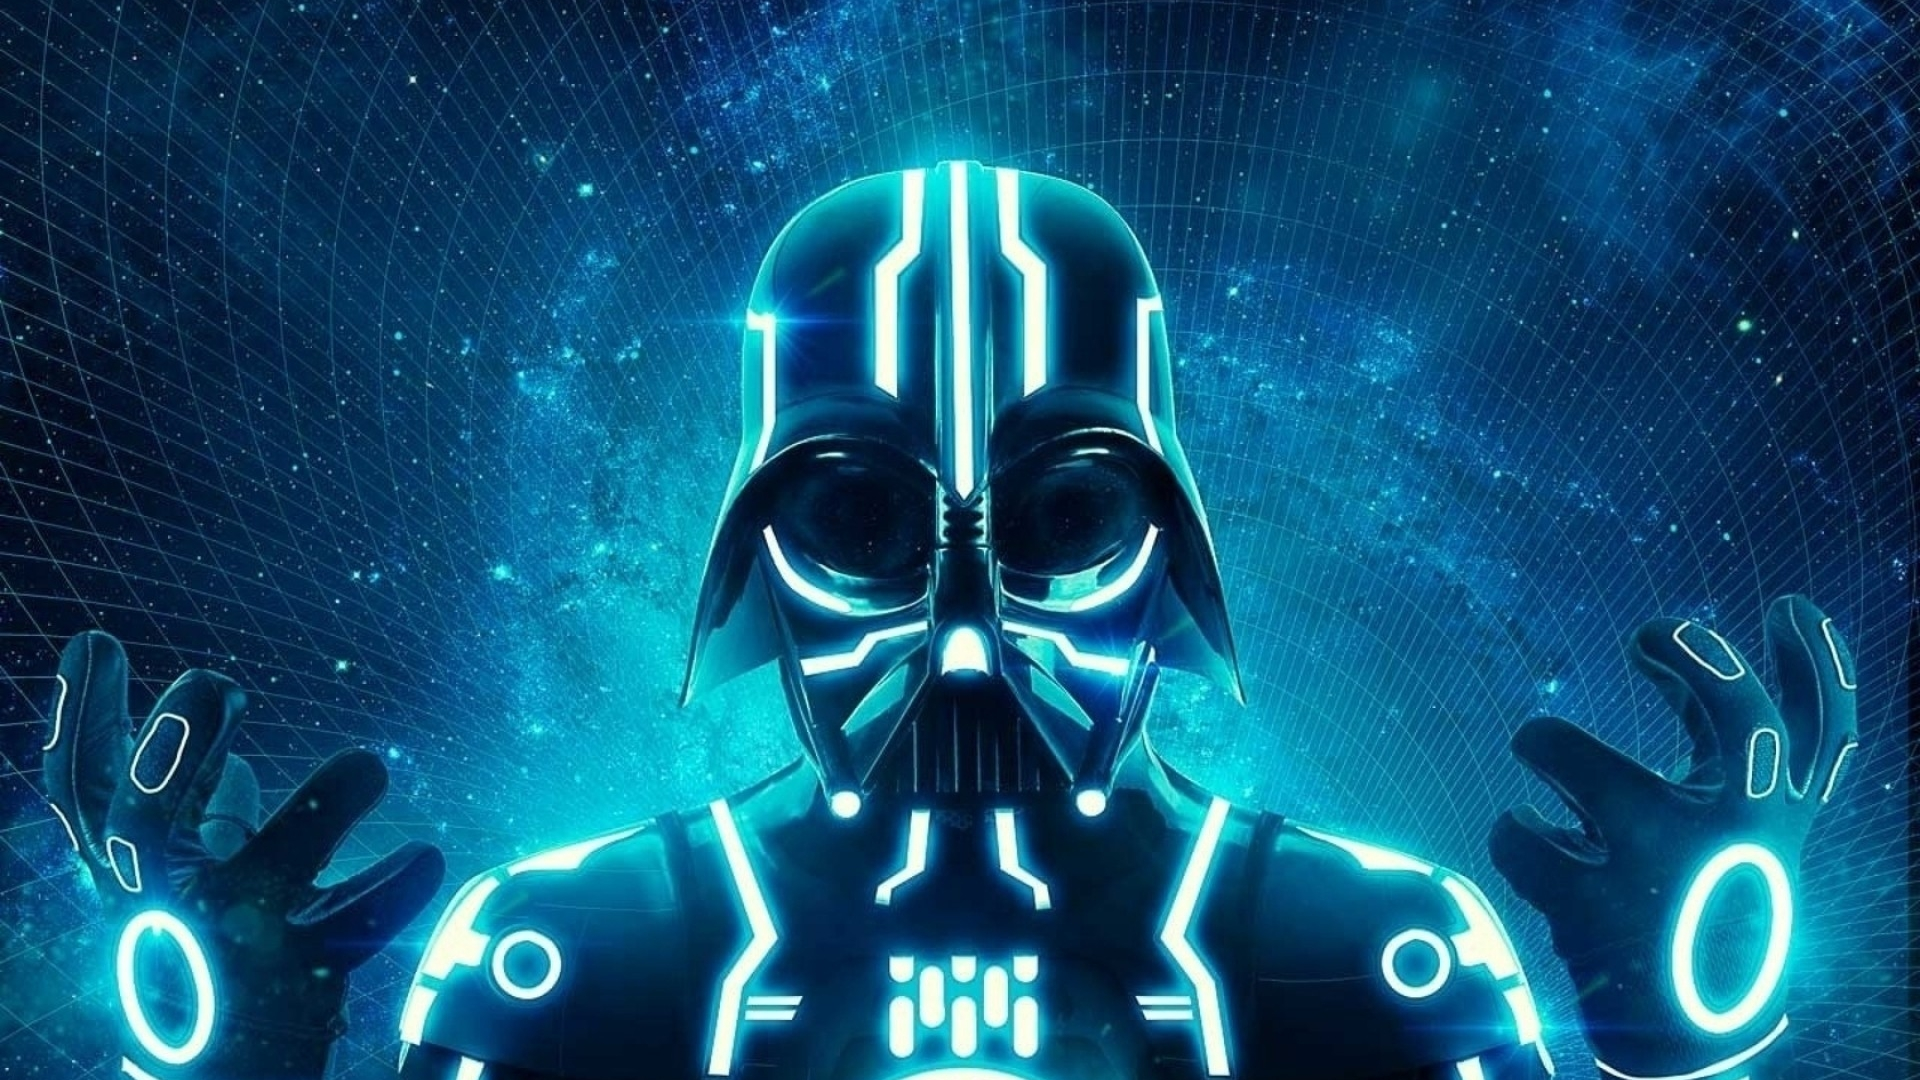 StarWars-DarthVader-FanArt-Tron-MixUp-wallpaper-wp38076